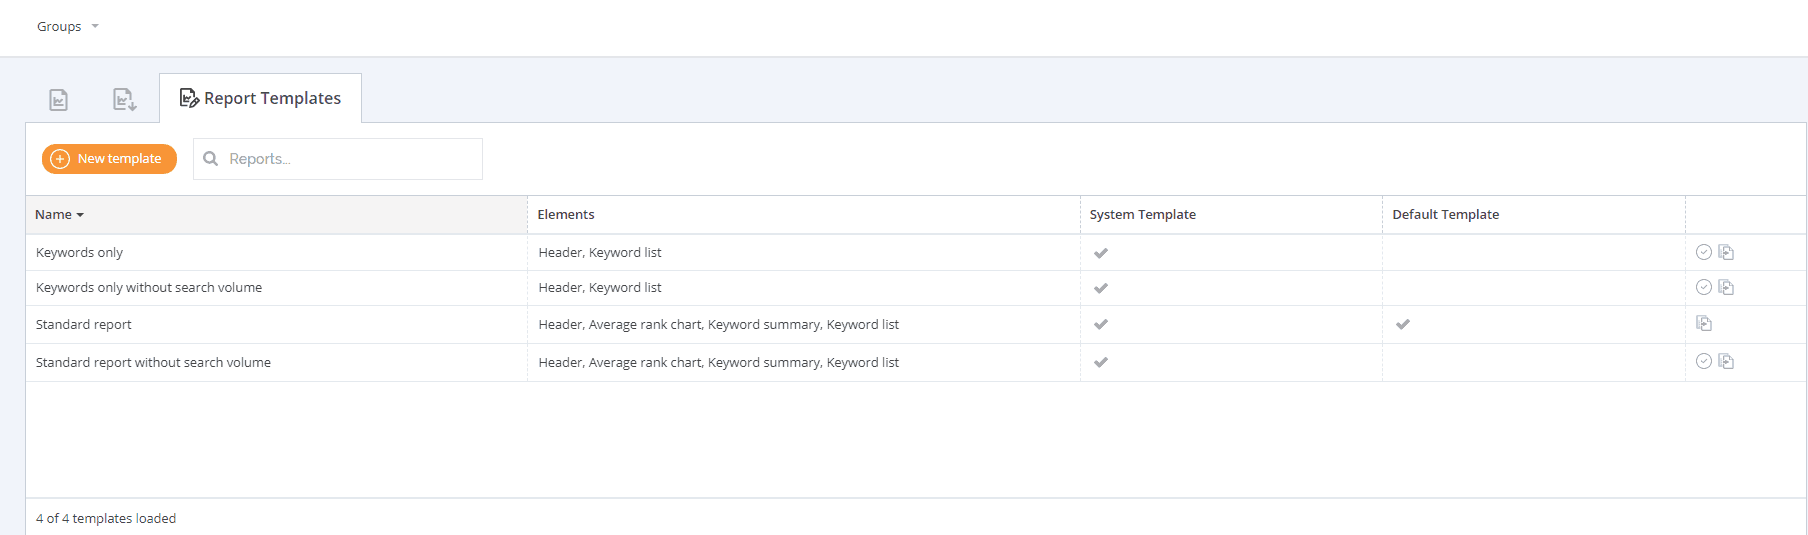 AccuRanker reporting templates